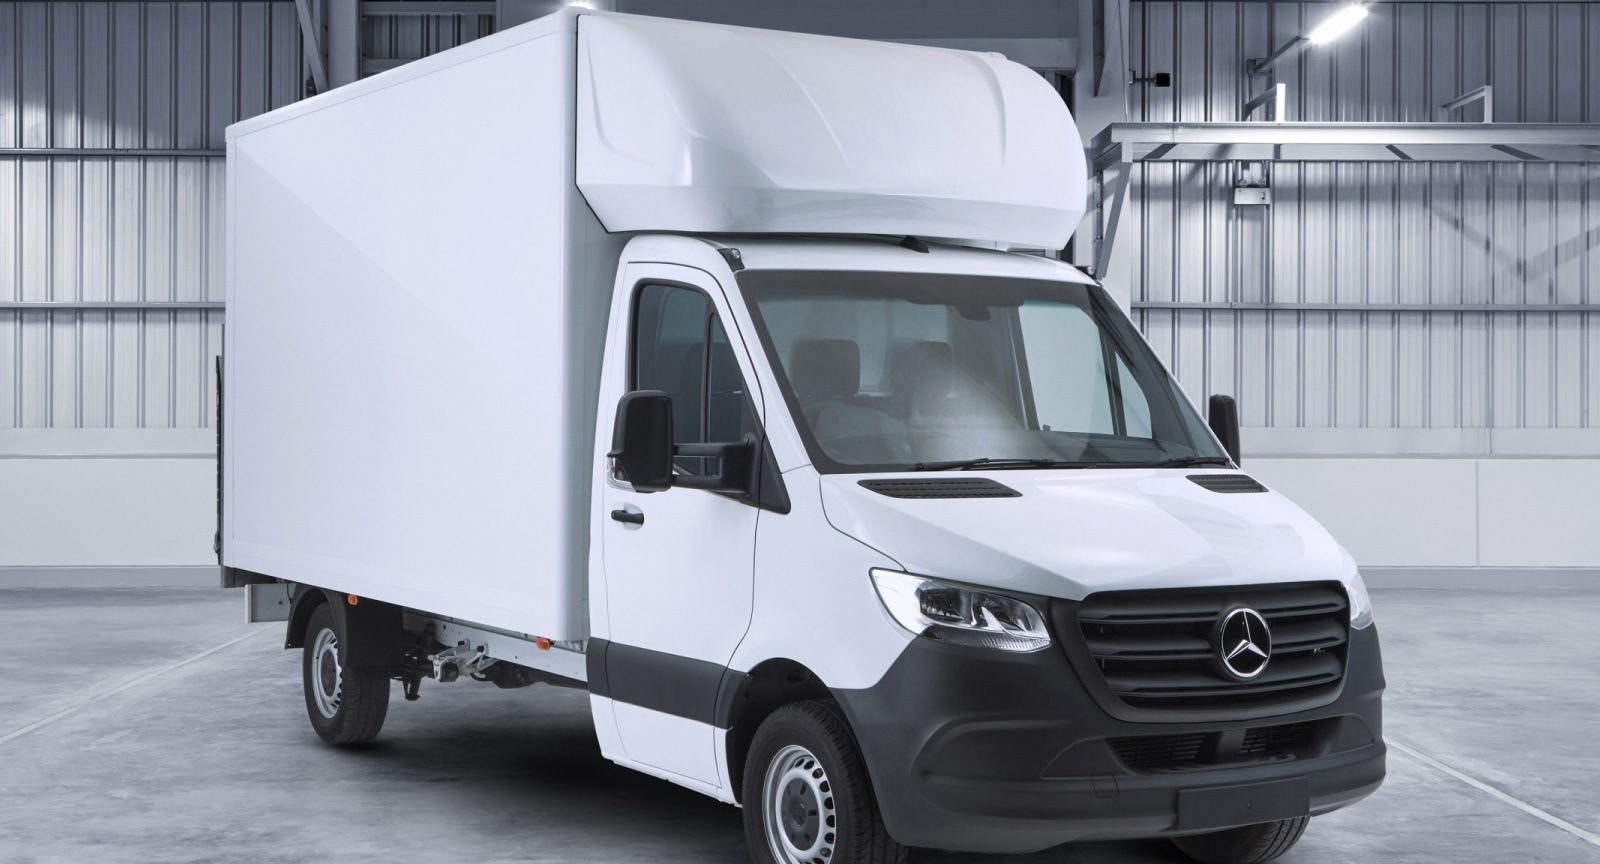 Mercedes Sprinter Luton by Quadrant Vehicles